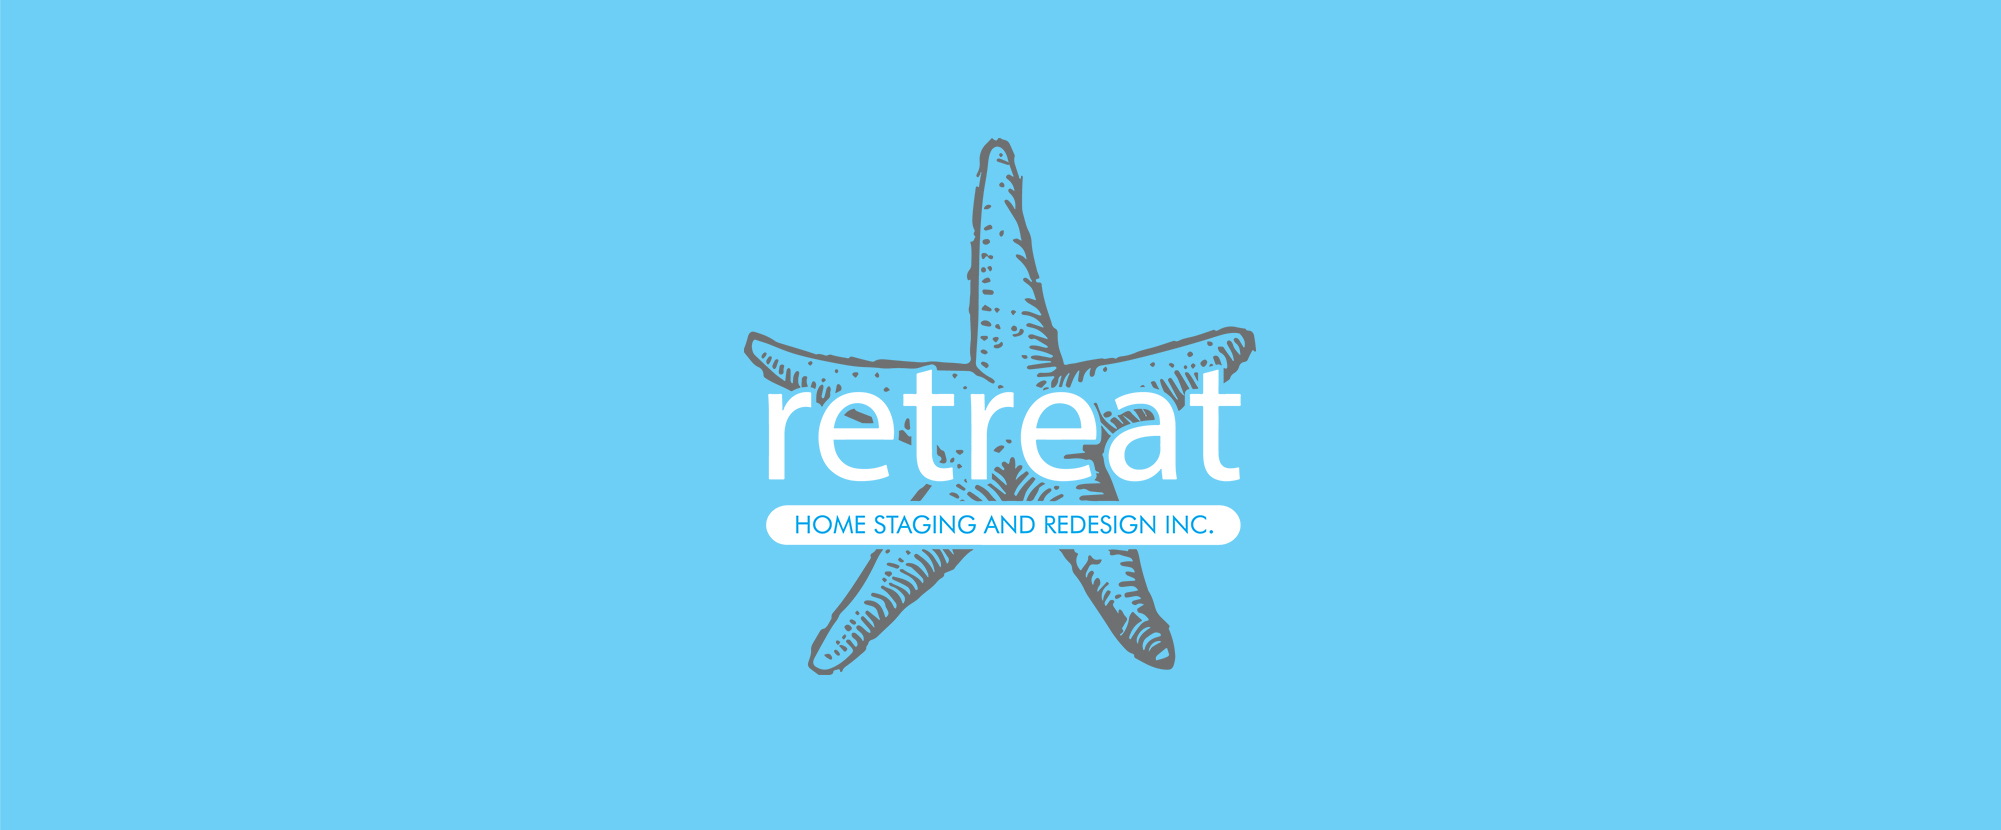 retreat-image